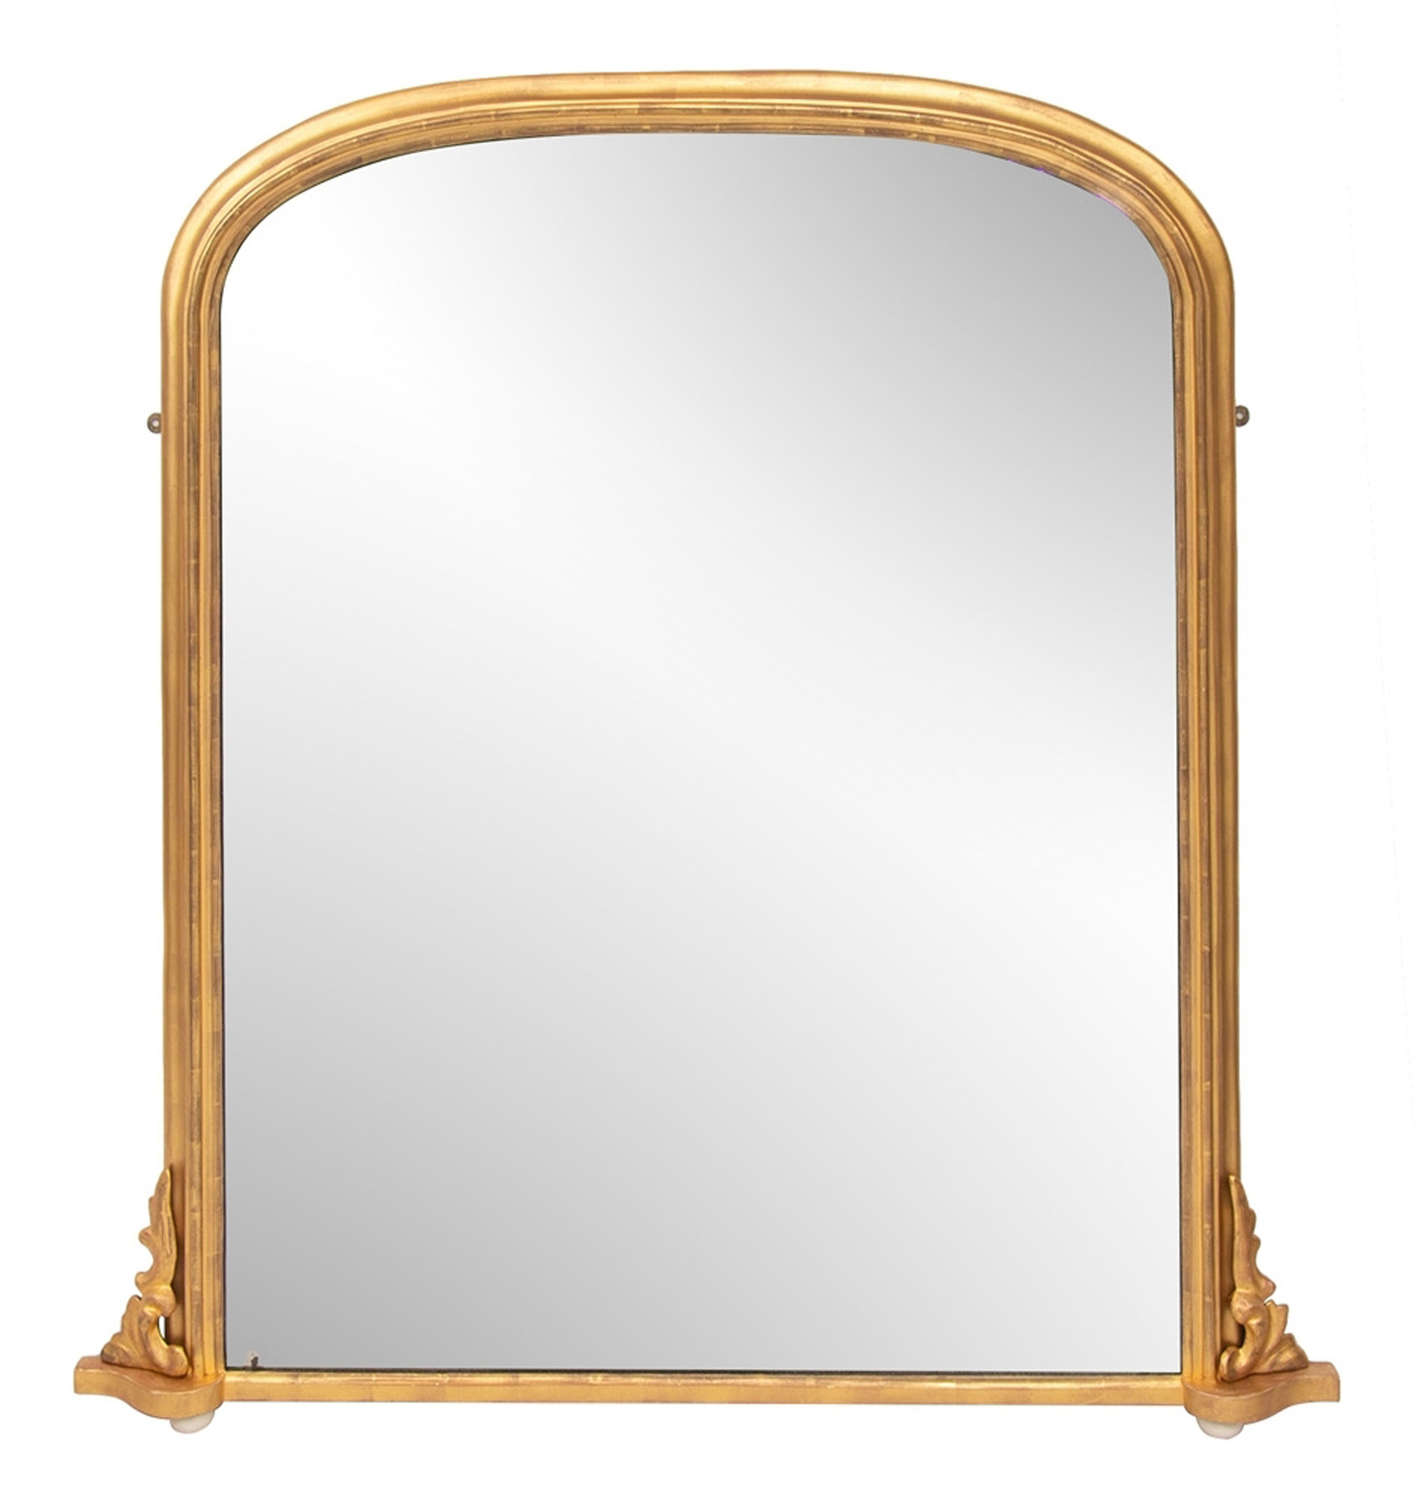 Antique Gilded Overmantel Mirror c.1870